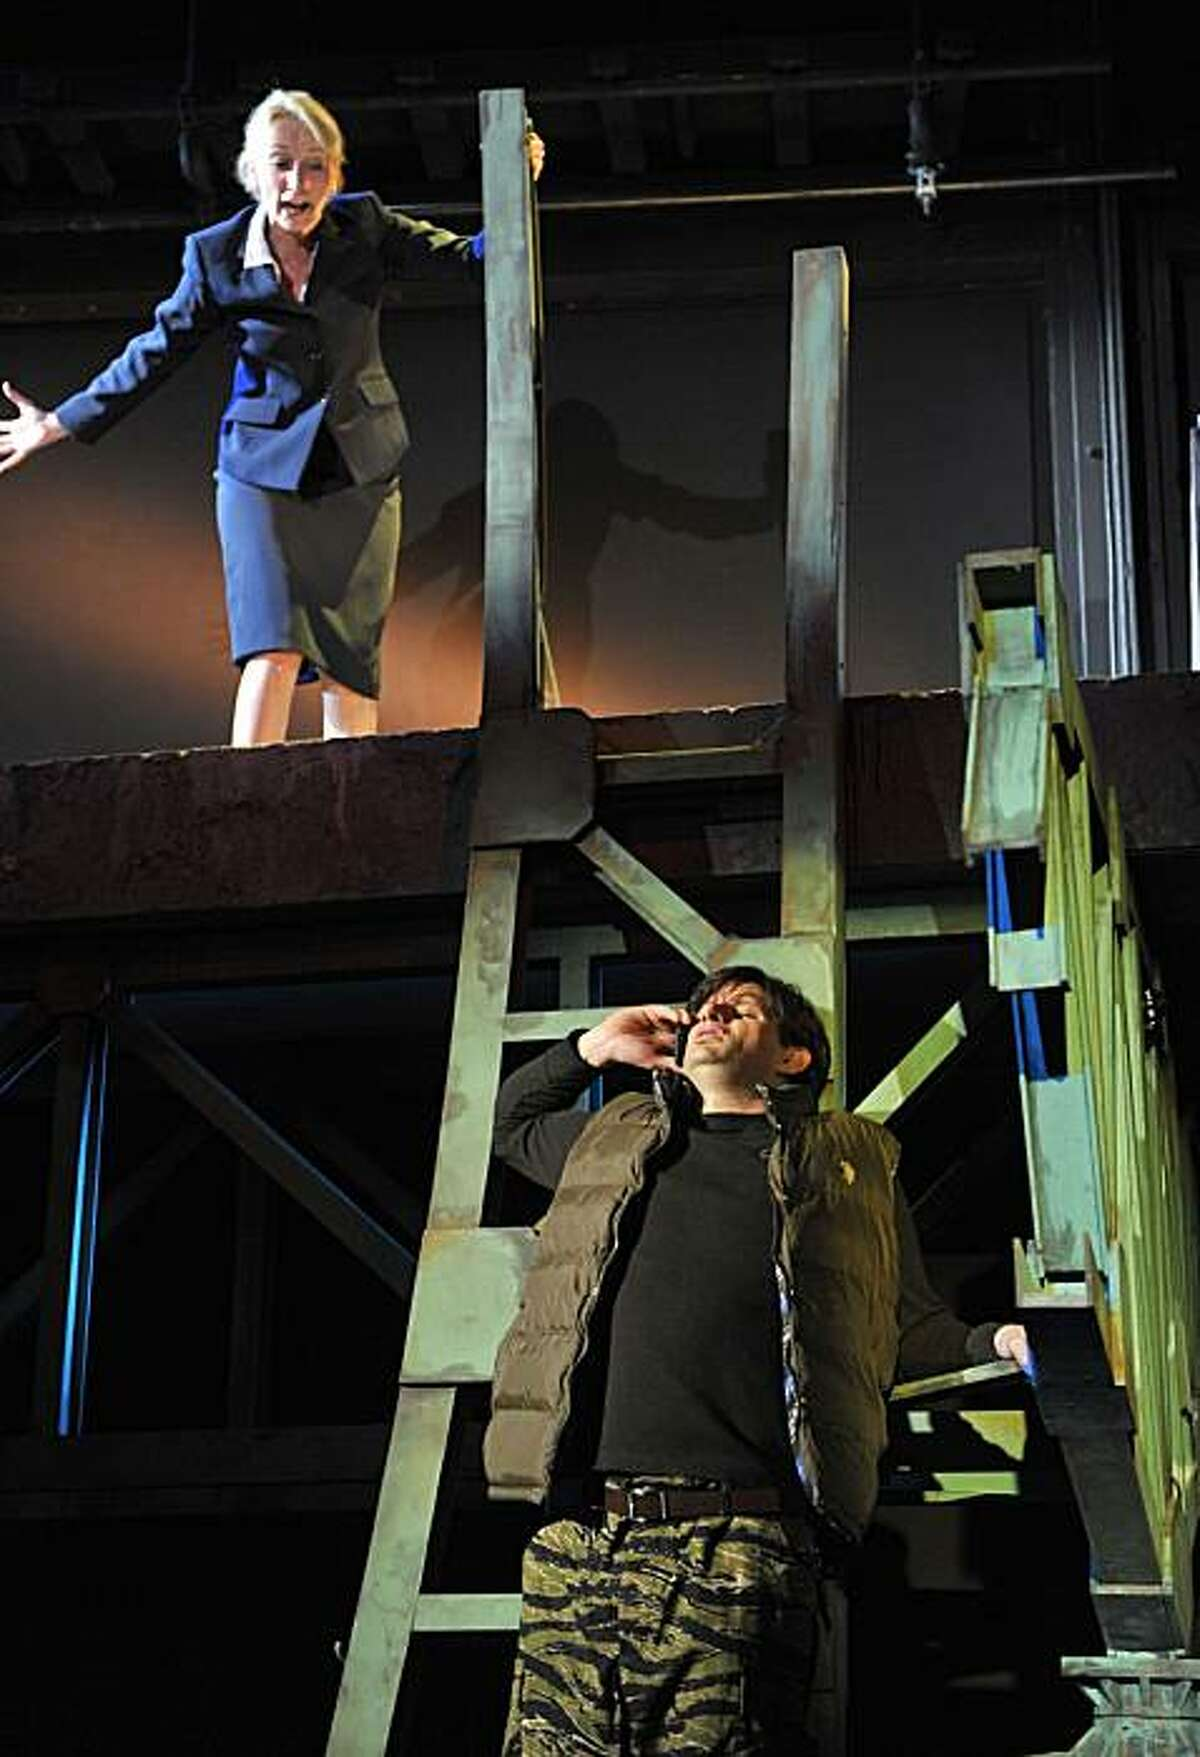 Hannah (Carrie Paff) and David (Gabriel Marin) face their fears on top of a bridge in Aurora Theatre's world premiere of Allison Moore's